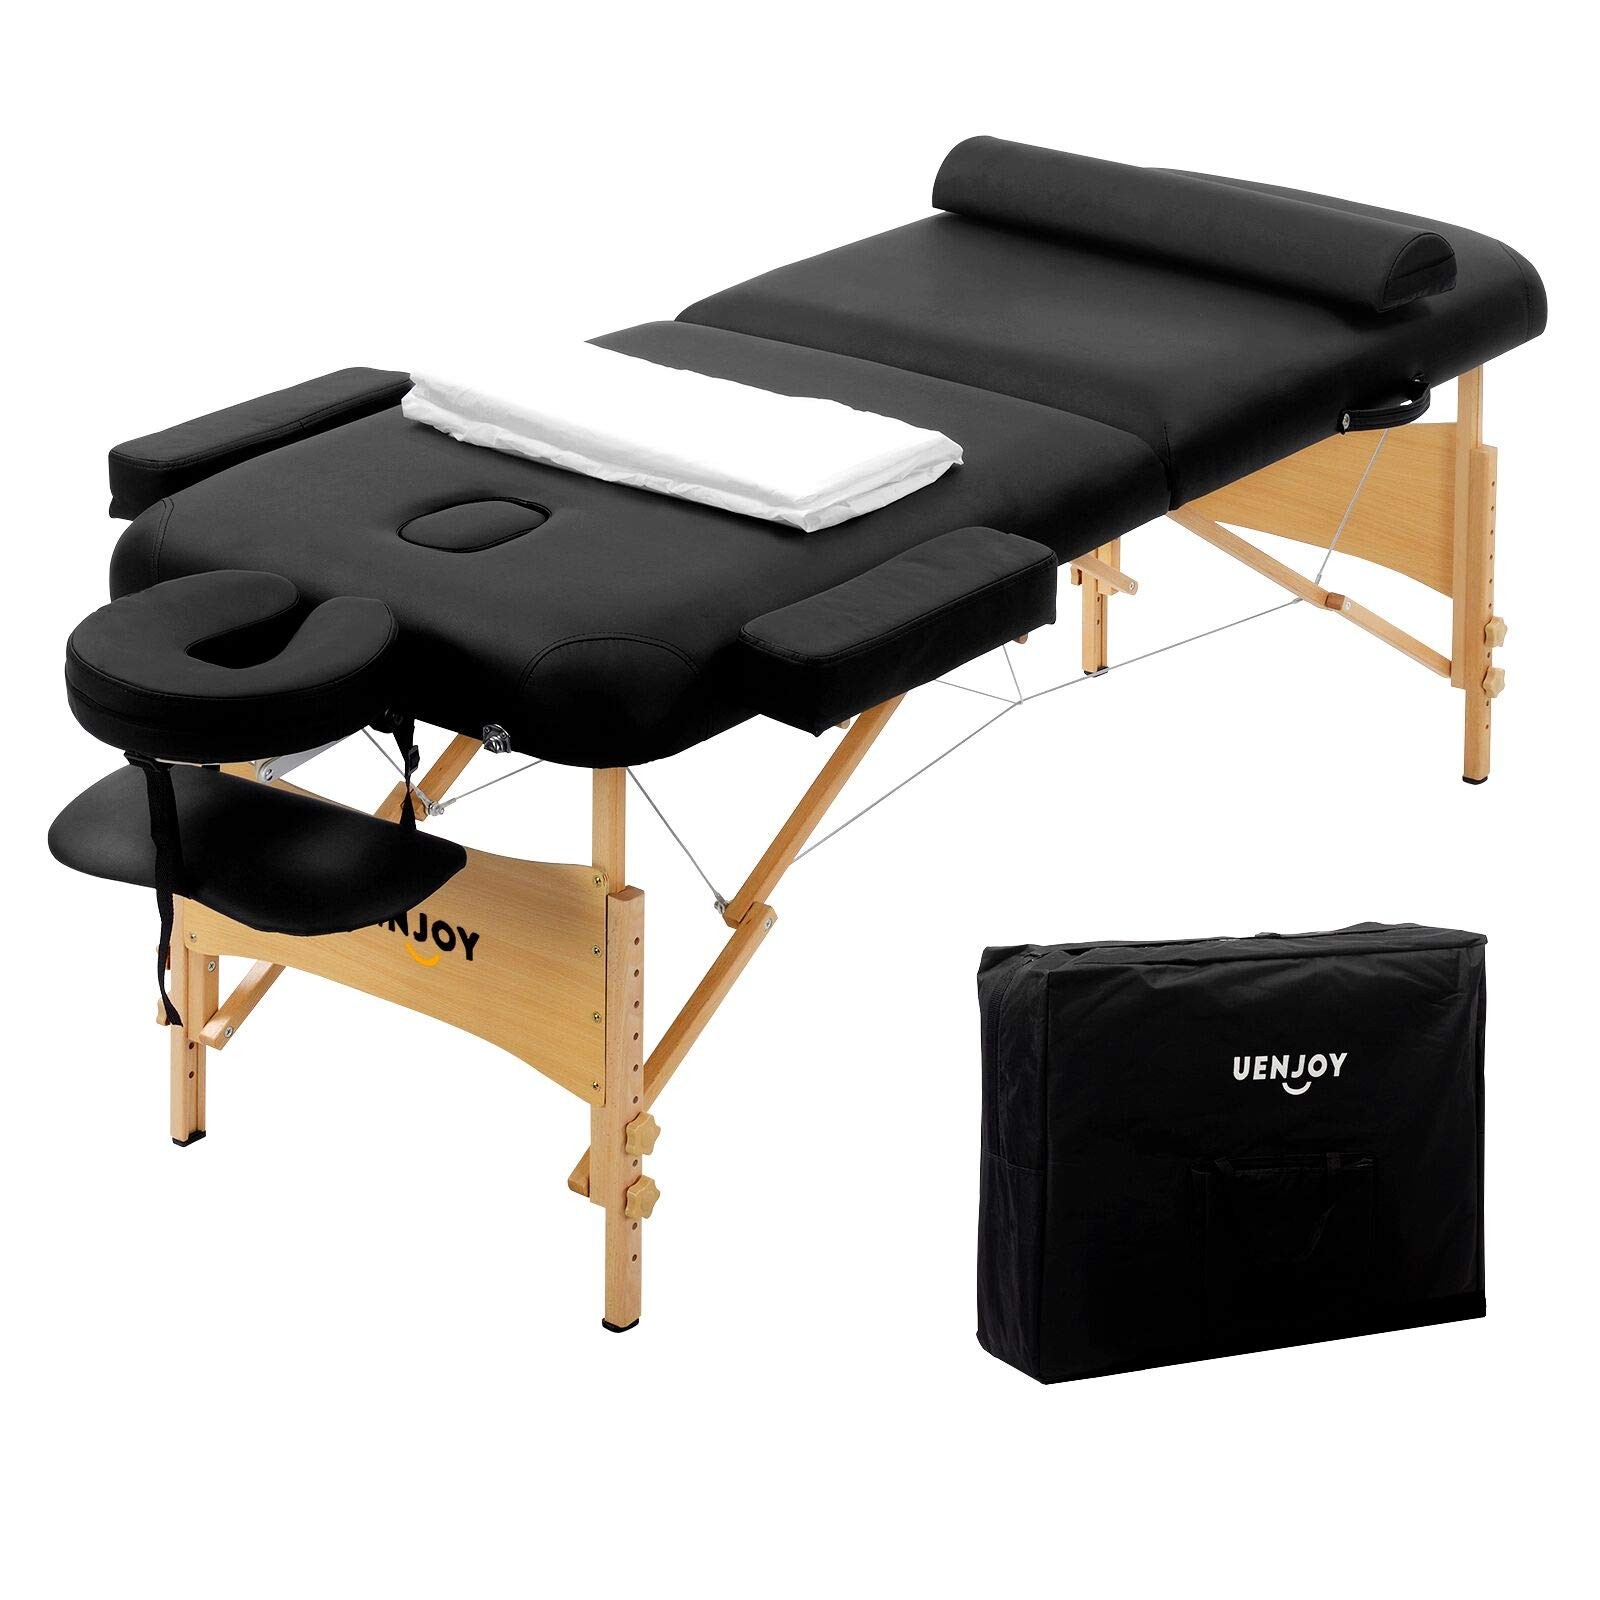 Uenjoy Massage Table 84'' Professional Folding Massage Bed Deluxe Model with Extra Width, Ultra-thick Sponge, PU Leather Surface & Additional Accessories, 2 Fold, Black by Uenjoy